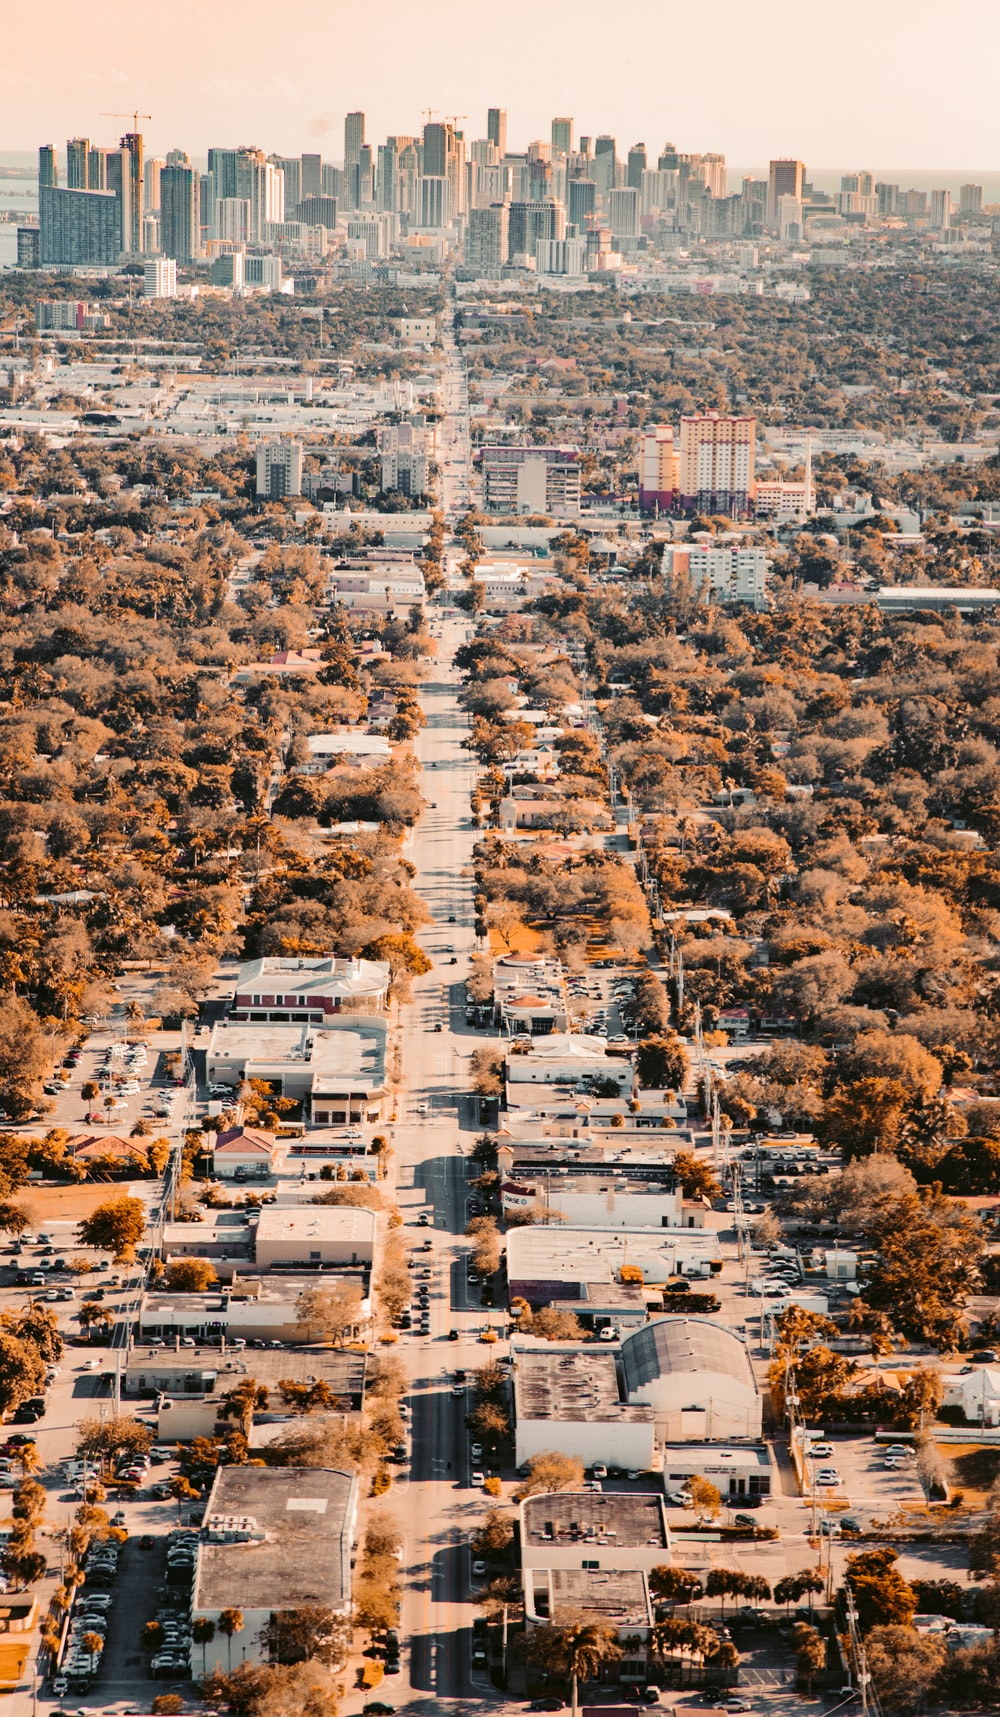 aerial photography of city landscape during daytime